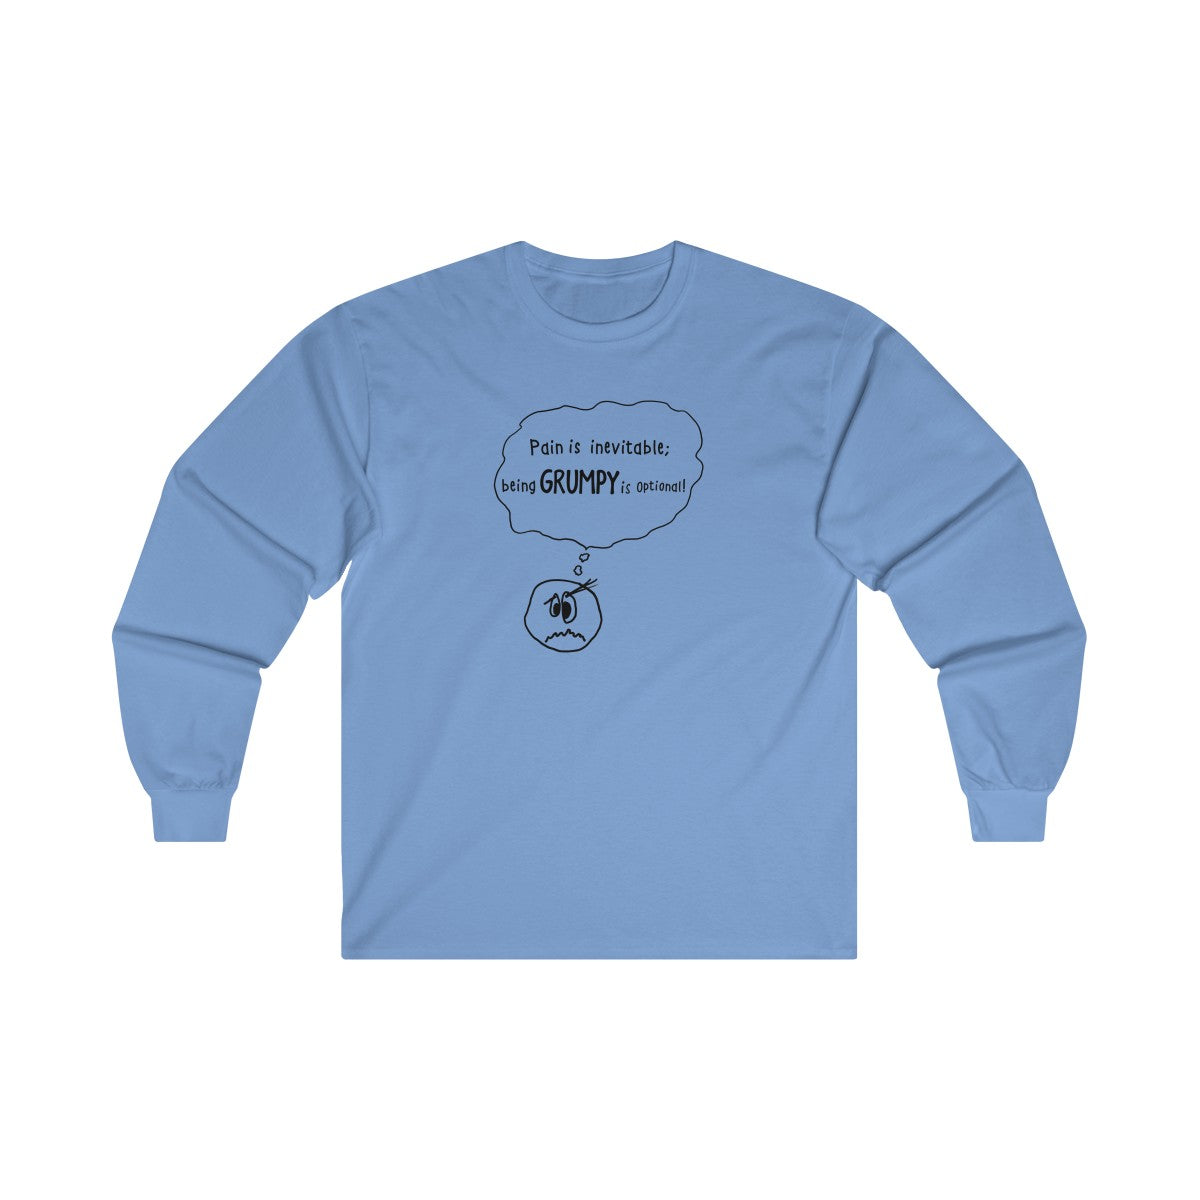 Grumpy is Optional: Unisex, Ultra Cotton Long Sleeve Tee